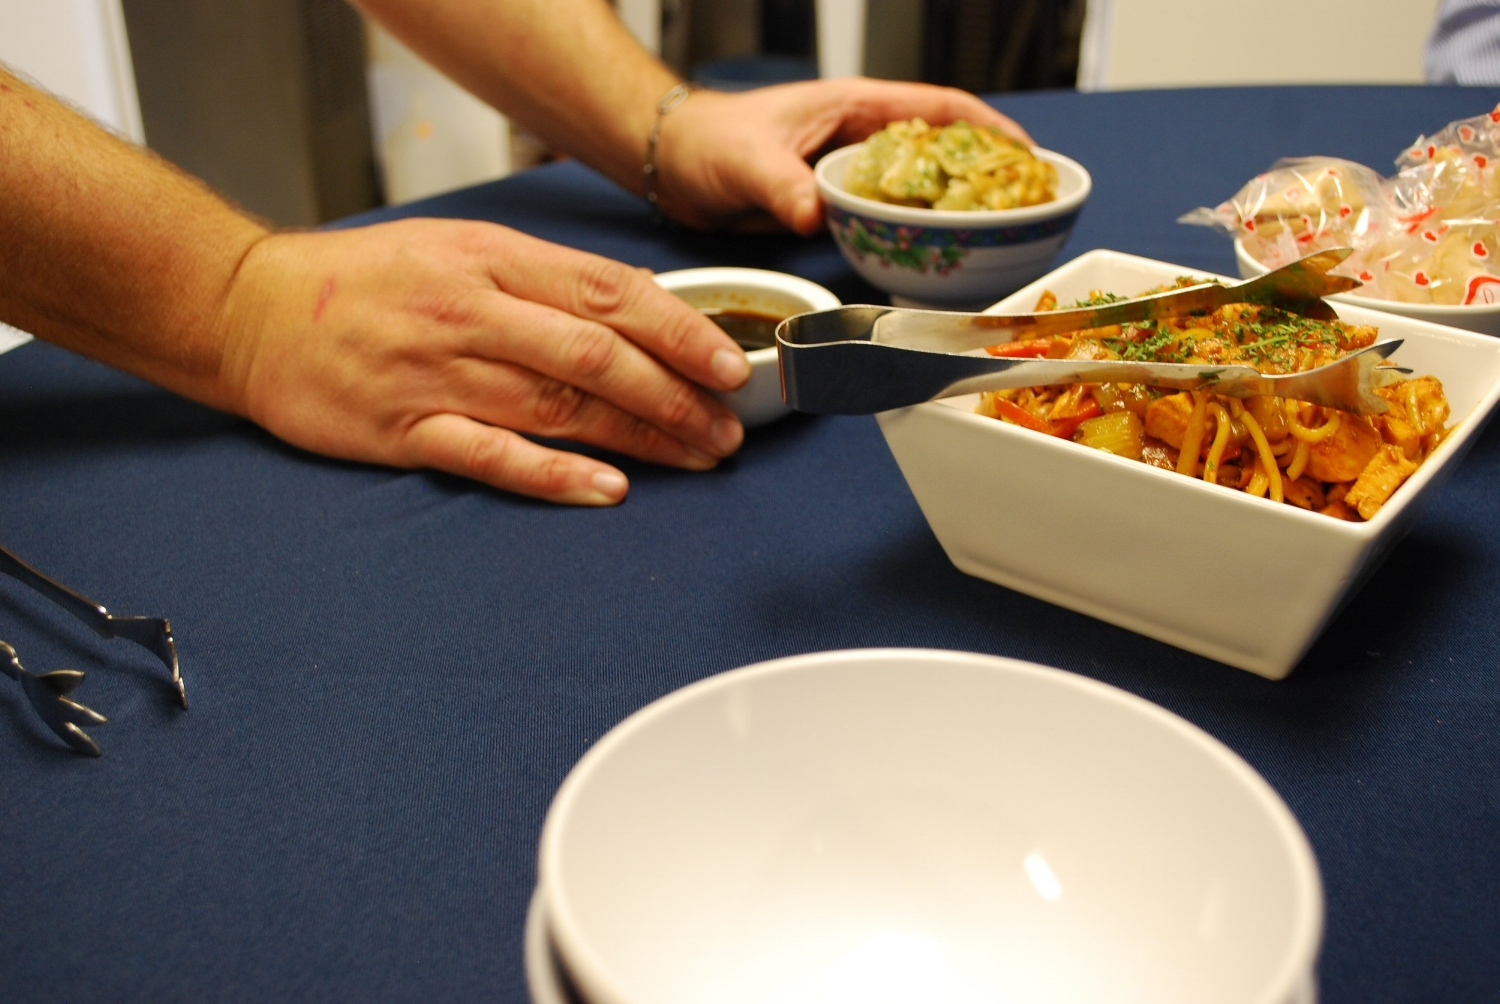 Chef McCauley prepares Lo Mein and offers our fortunes. Could Garnish be in our future?